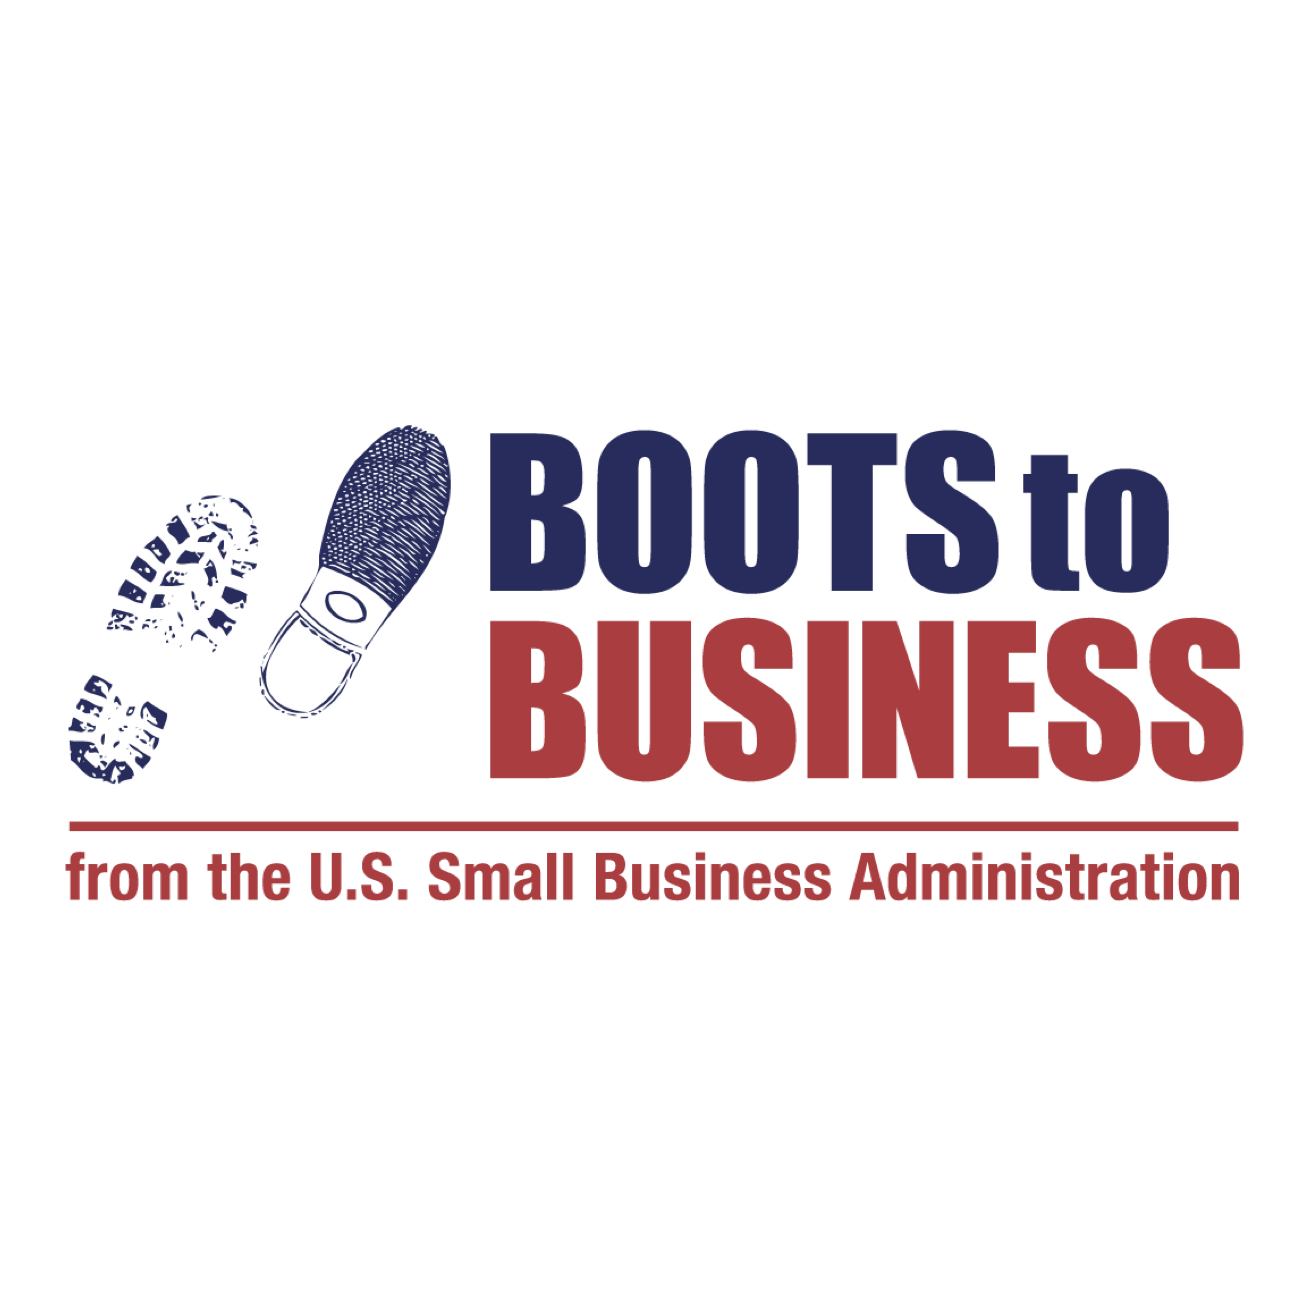 VETERAN (BOOTS TO BUSINESS)   Boots to Business is an entrepreneurial education and training program for Veterans. The curriculum continuum includes steps for evaluating business concepts, the foundational knowledge required to develop a business plan and information on SBA resources available to help access start-up capital and additional technical assistance. Veterans of all eras, Service members (including National Guard and Reserves) and their spouses are eligible to enroll in classes!